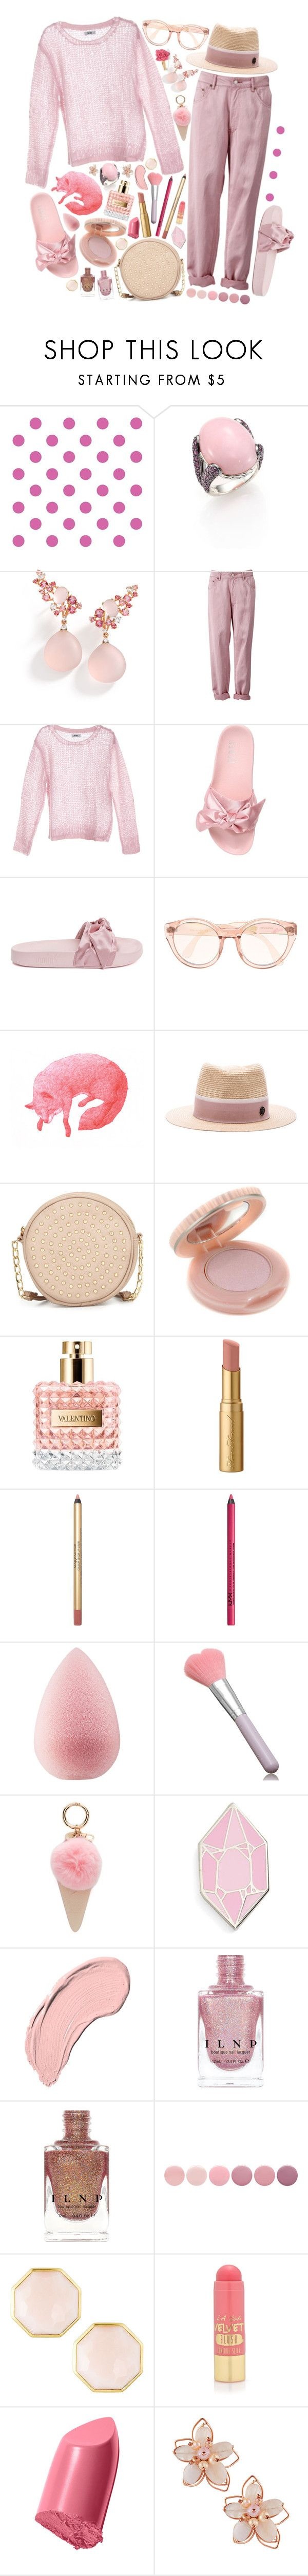 """""""#pink"""" by issuri ❤ liked on Polyvore featuring York Wallcoverings, John Hardy, Brumani, Puma, Maison Michel, Neiman Marcus, Paul & Joe, Valentino, Too Faced Cosmetics and NYX"""